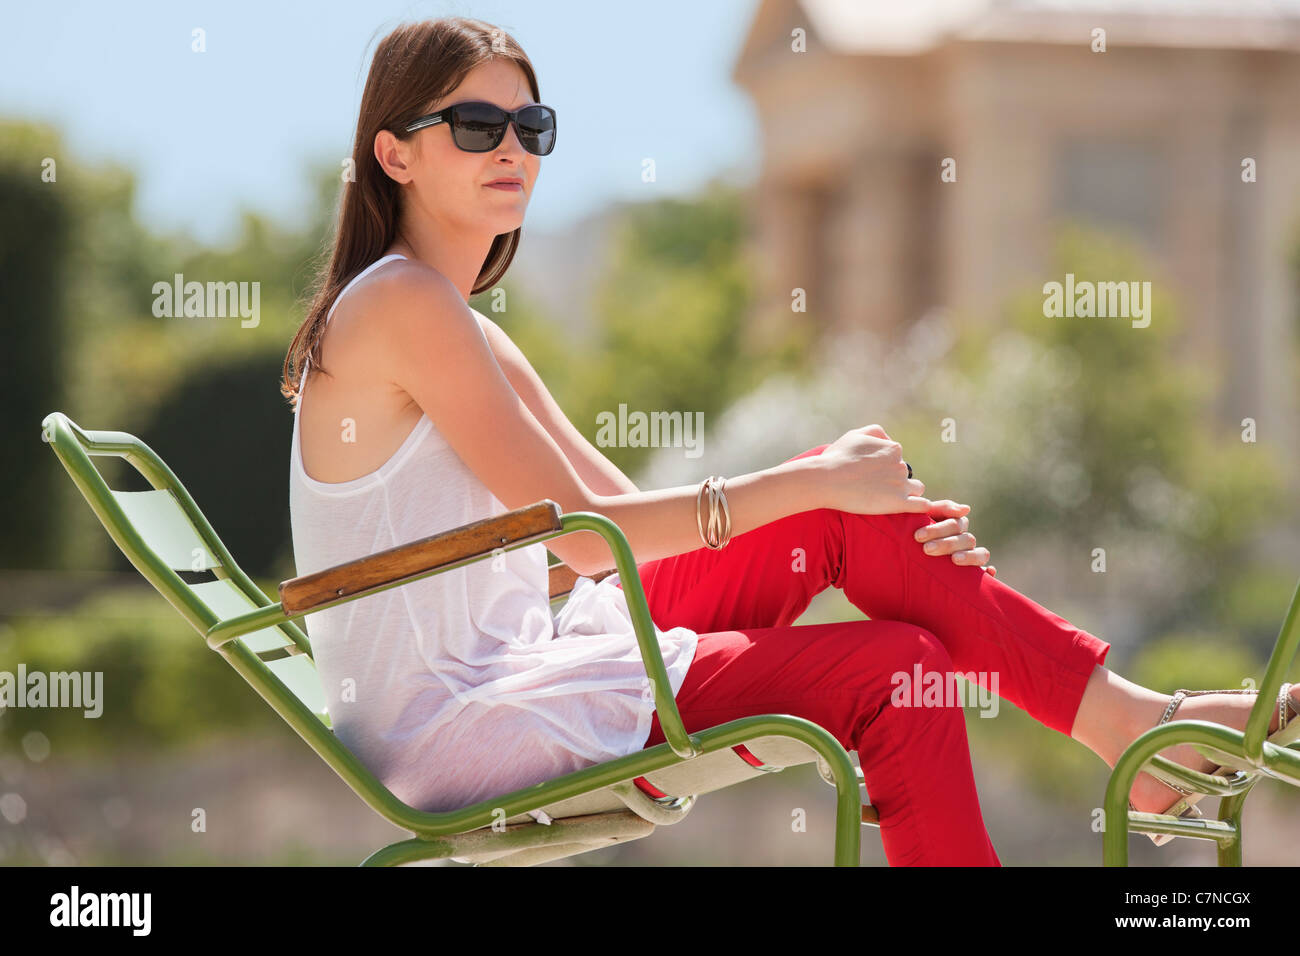 Woman sitting in a chair, Bassin octogonal, Jardin des Tuileries, Paris, Ile-de-France, France - Stock Image